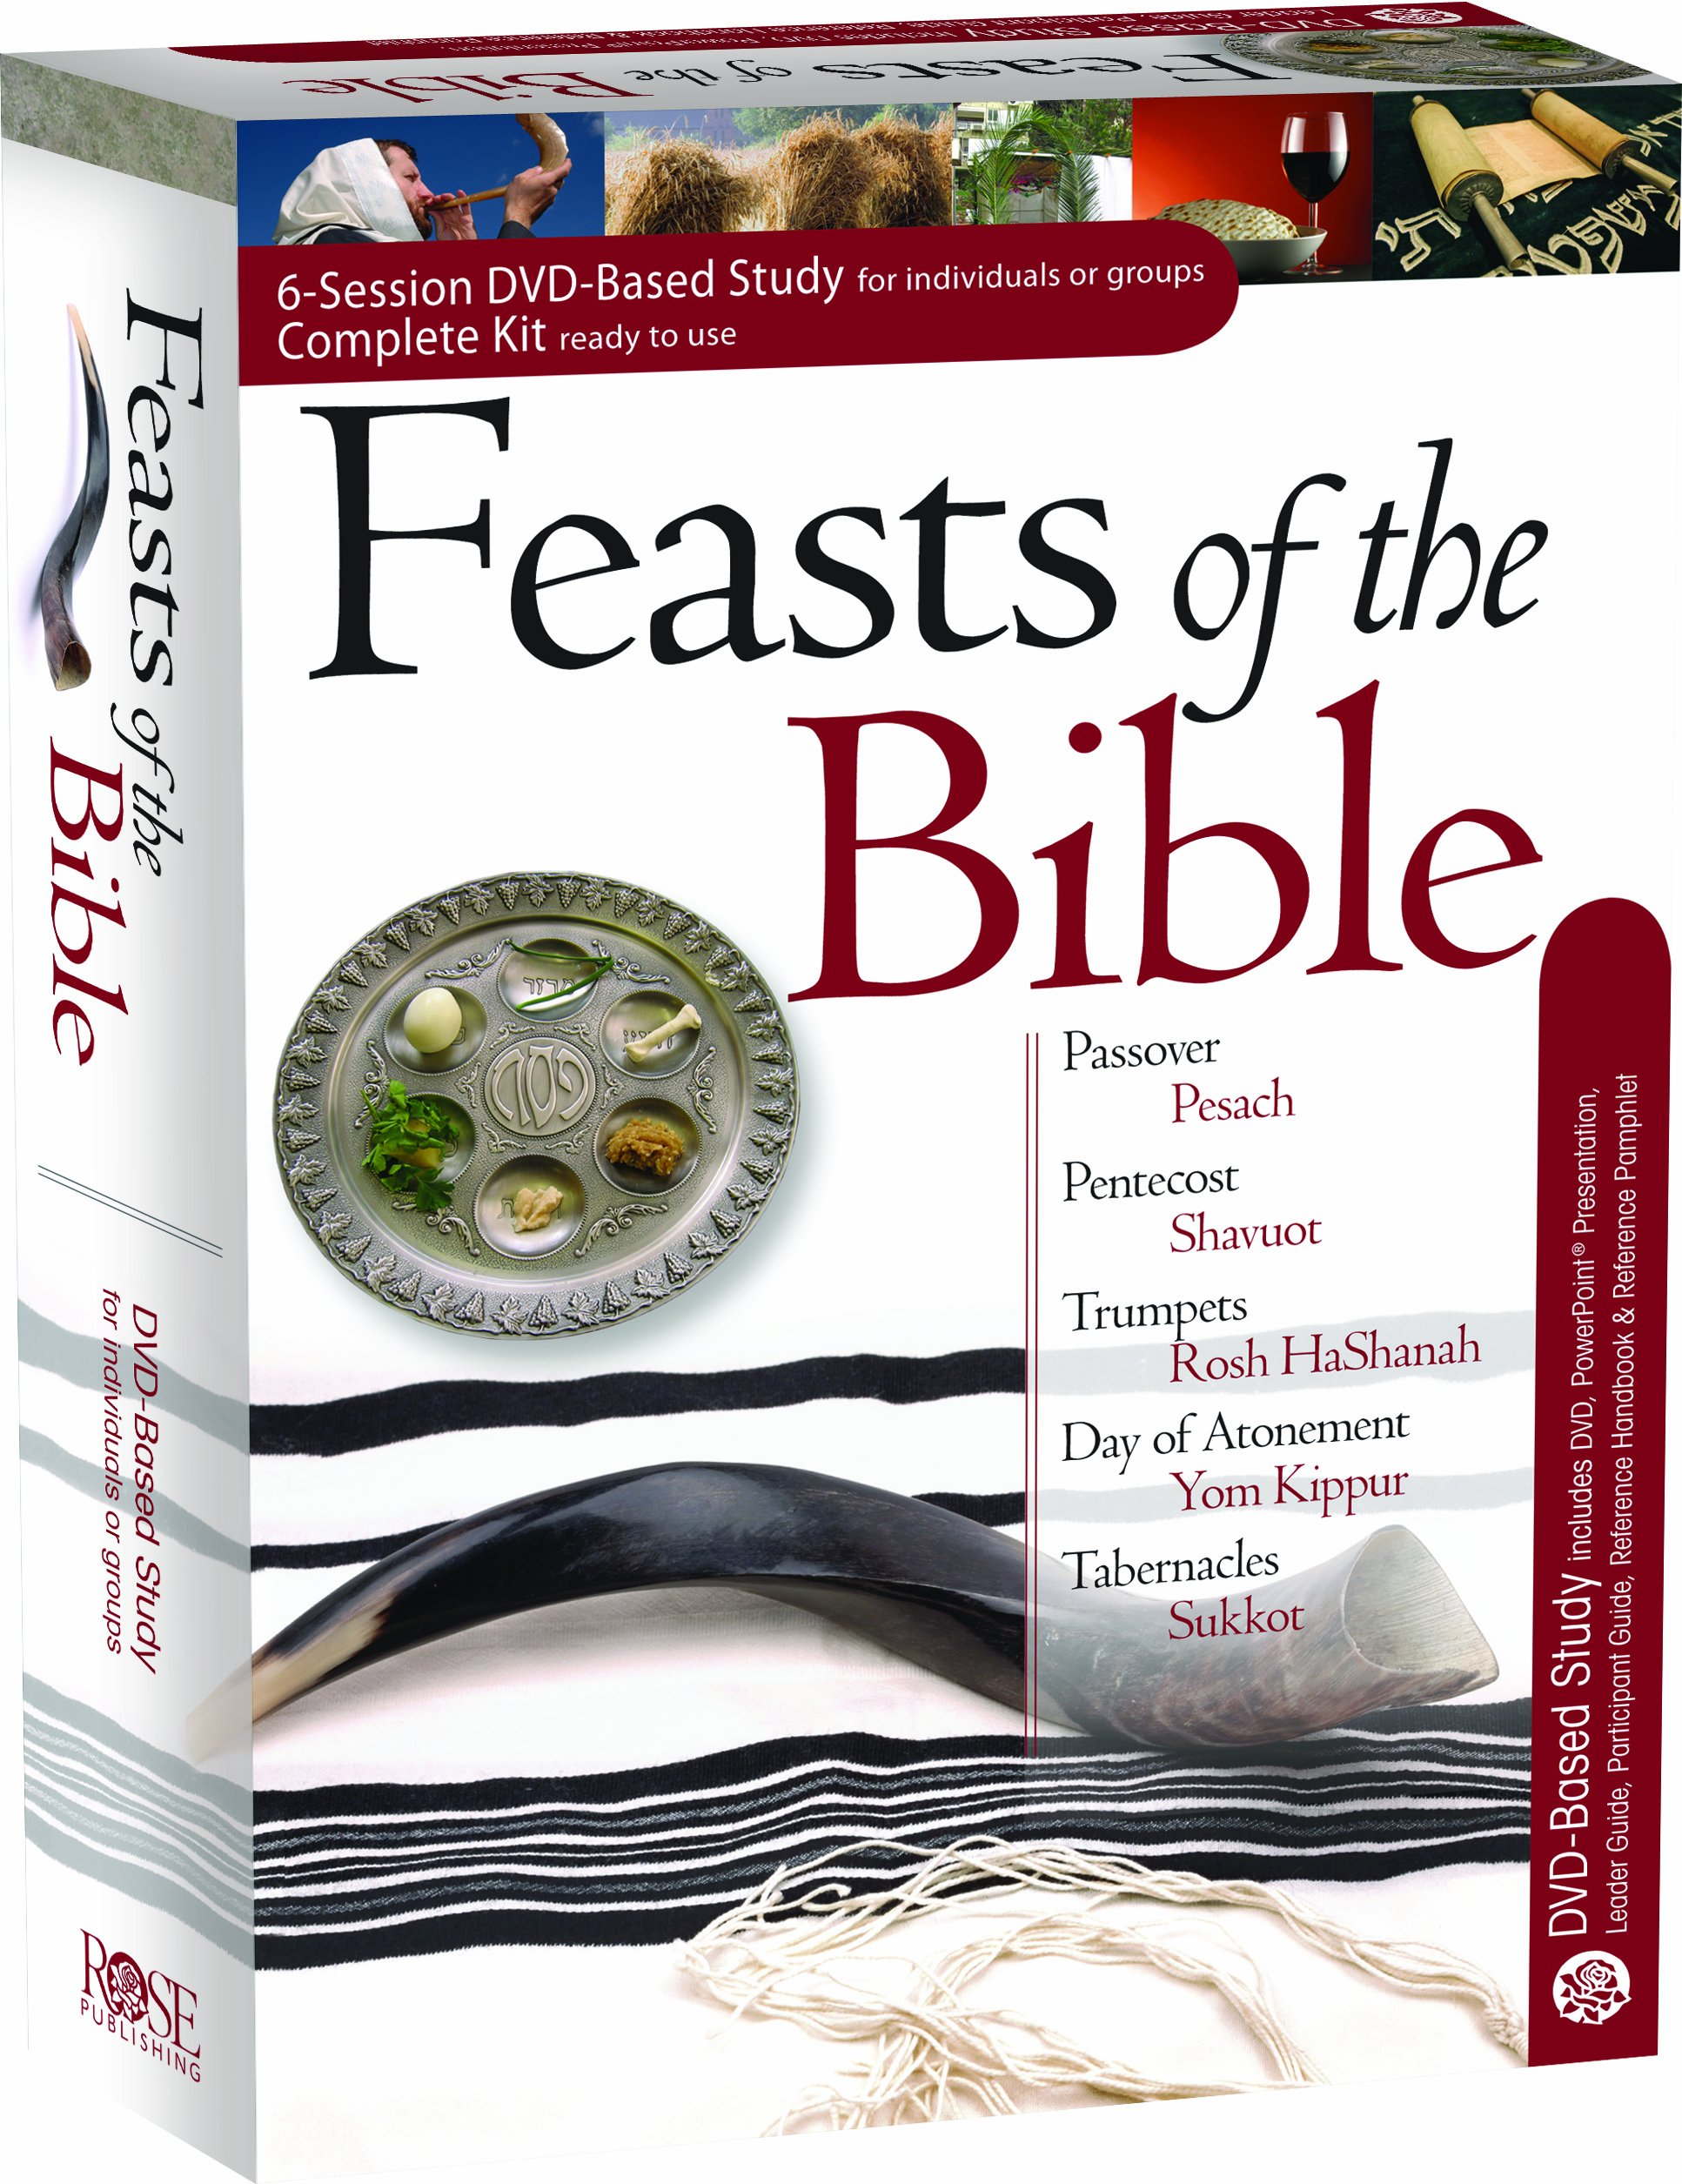 Complete Kit for the Feasts of the Bible 6-session DVD-based Study by Hendrickson Publishers